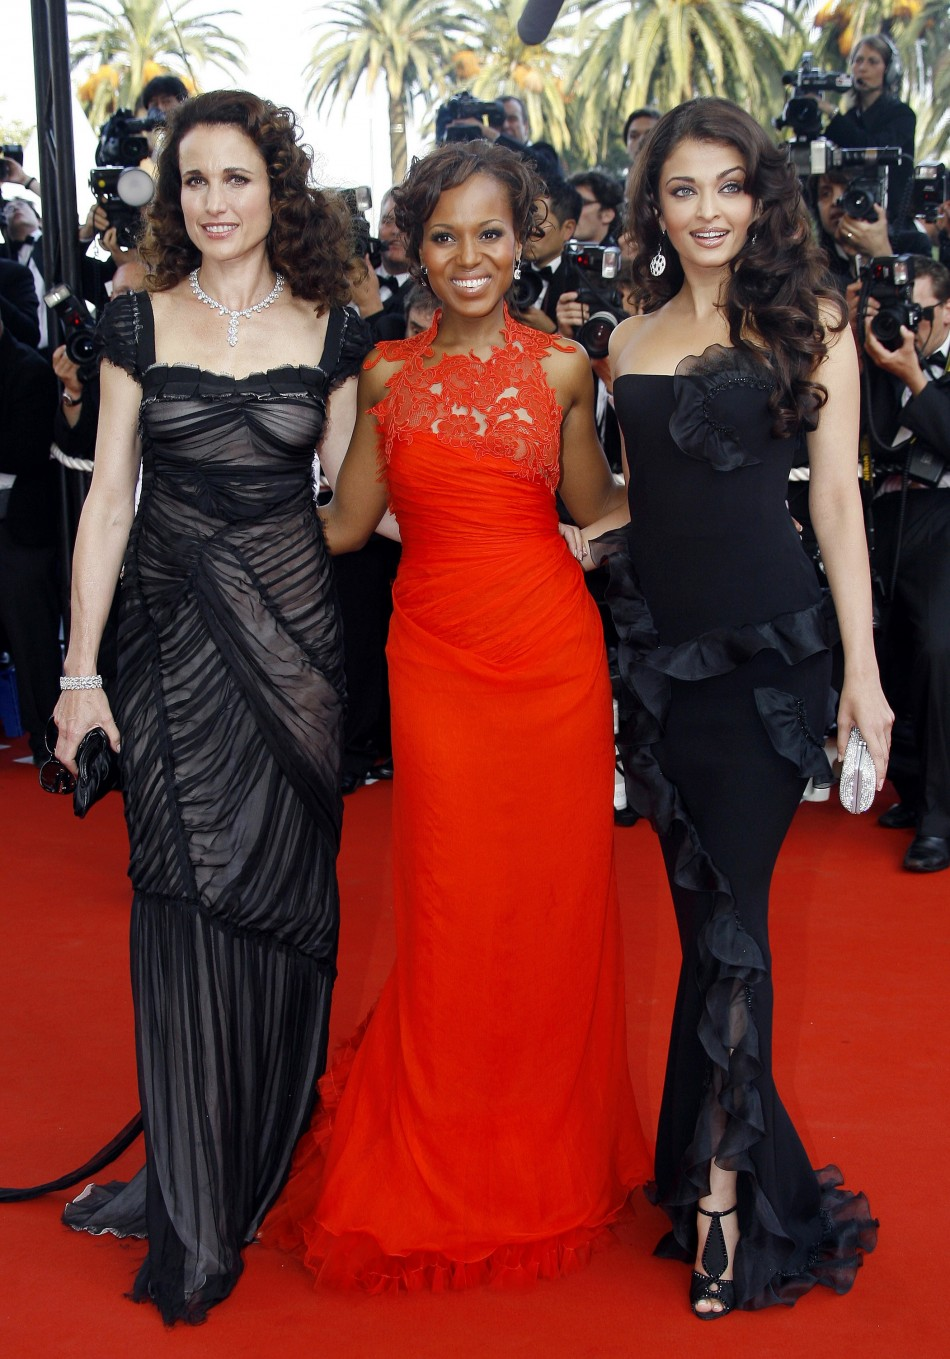 Actresses Andie McDowell L, Kerry Washington C and Aishwarya Rai R attend the world premiere of quotThe Da Vinci Codequot at the opening night of the 59th Cannes Film Festival in Cannes 2006.